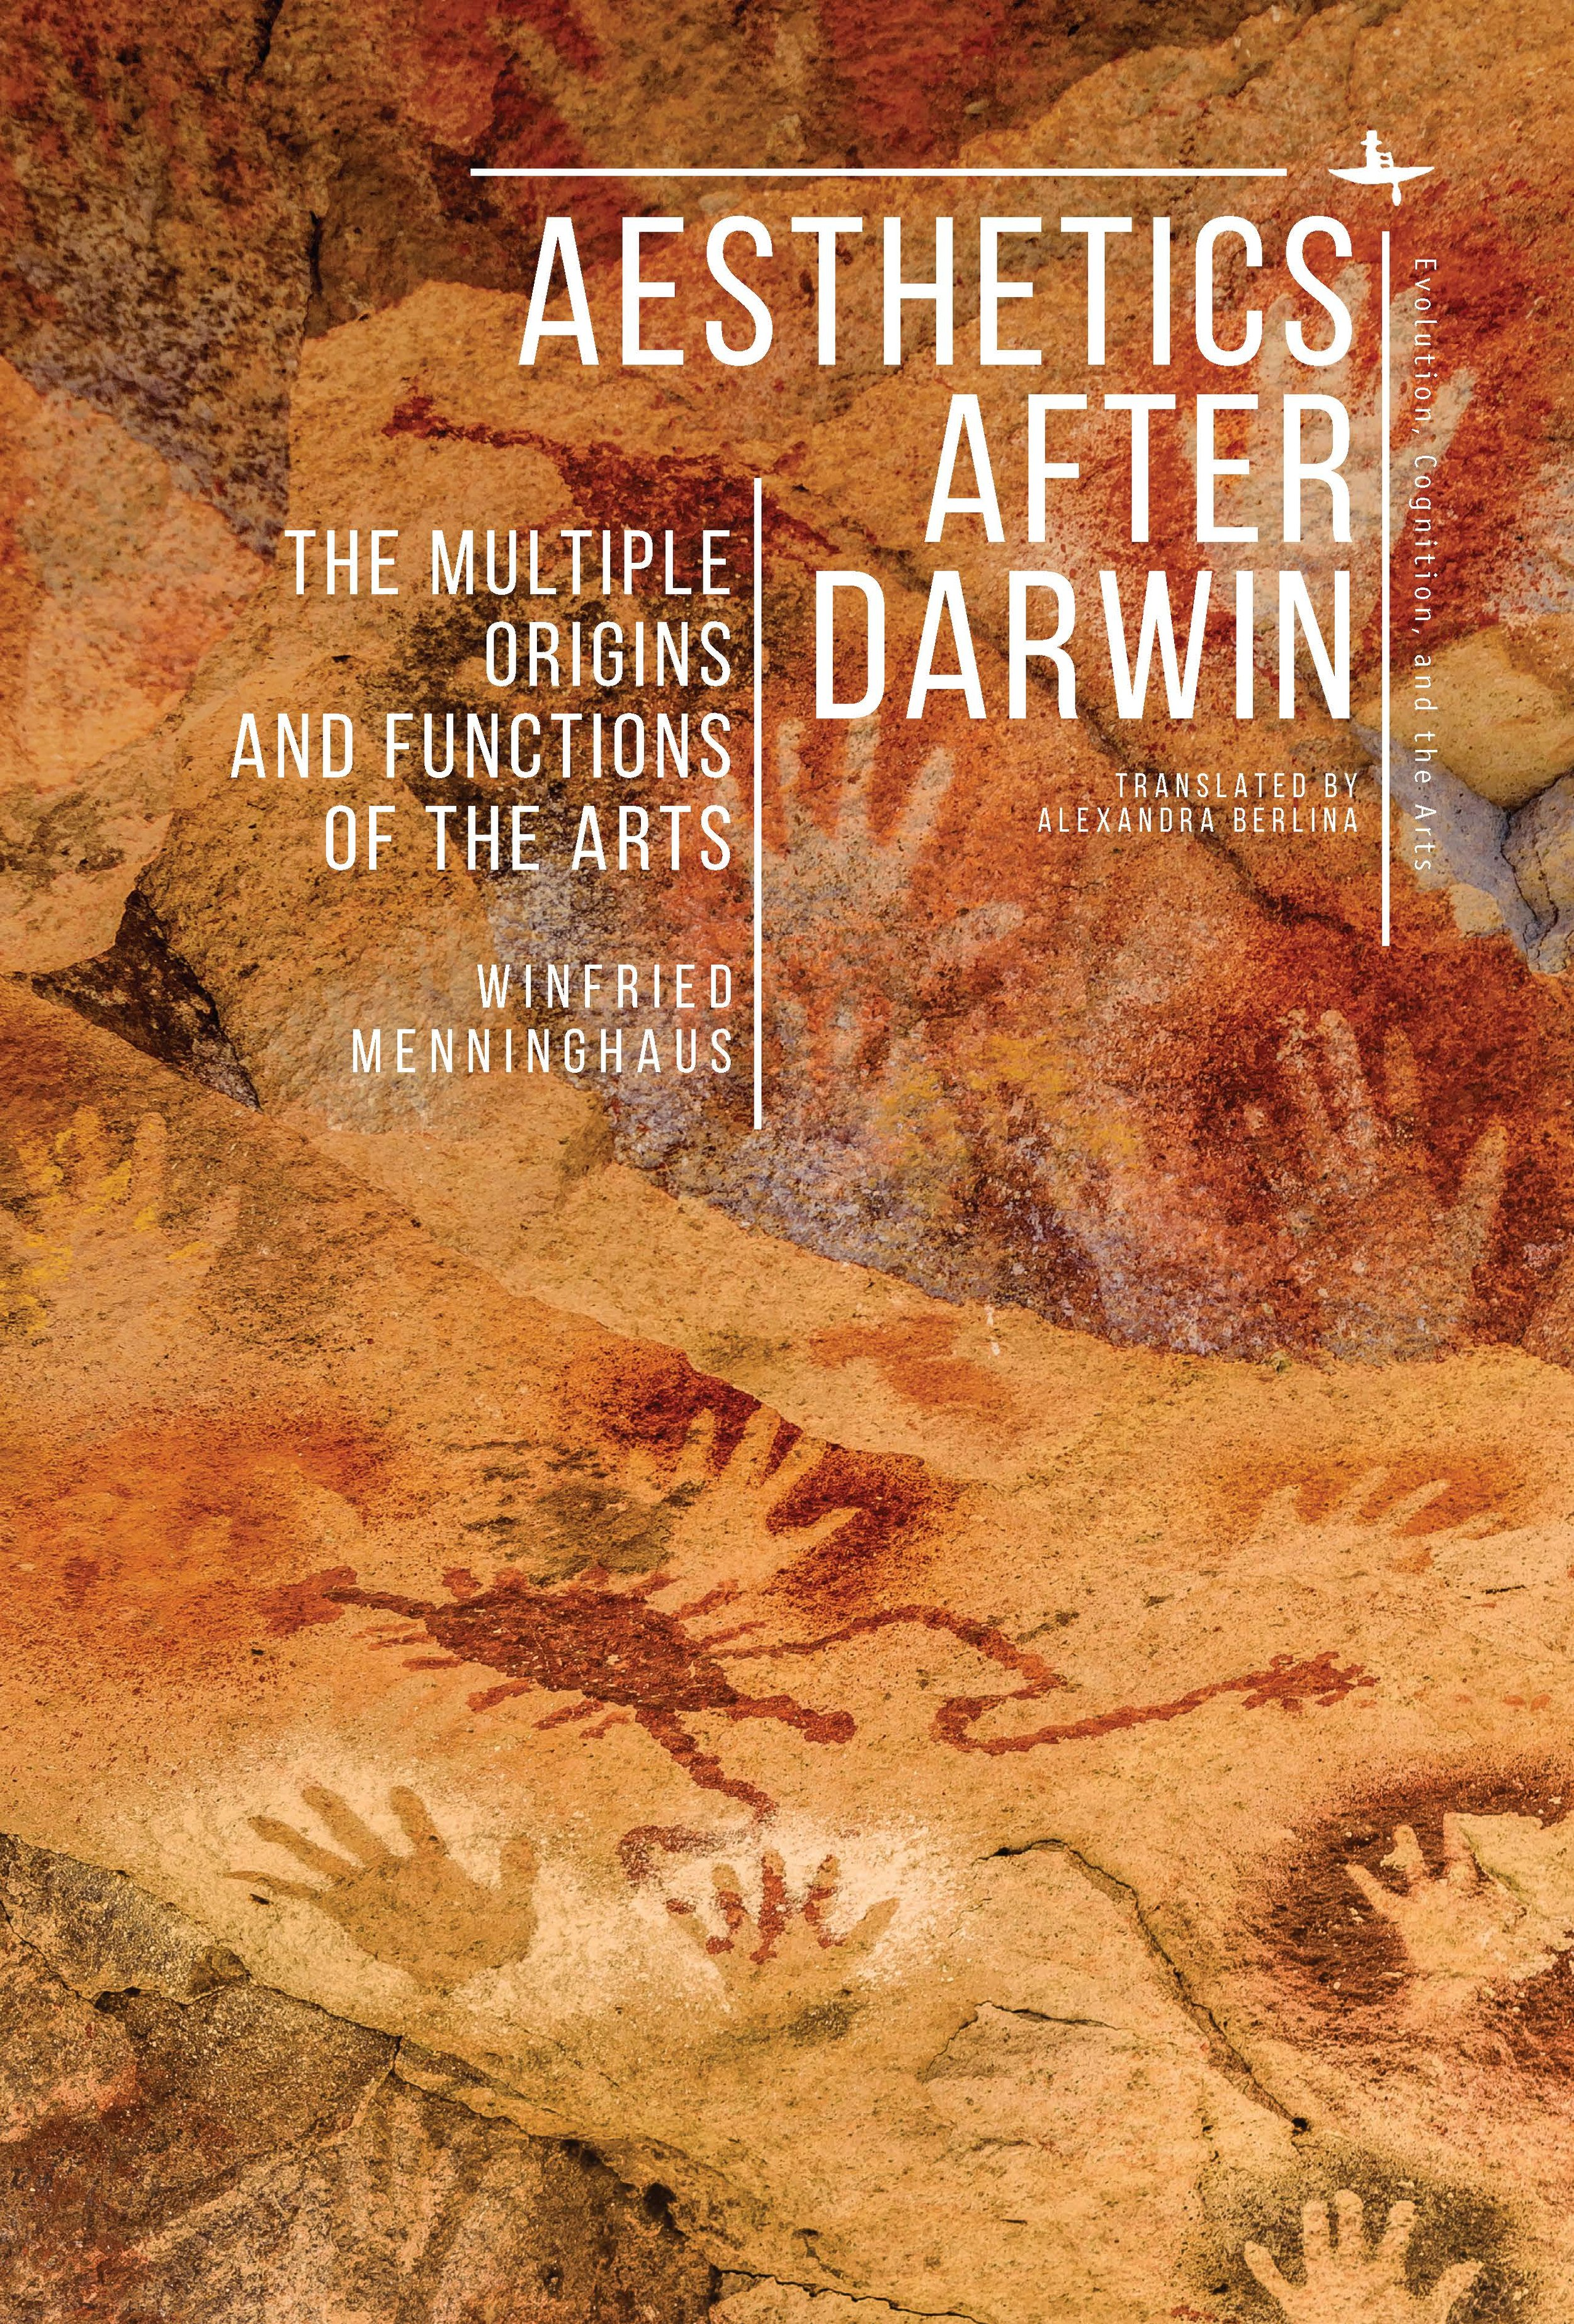 Aesthetics after Darwin: The Multiple Origins and Functions of the Arts —  Academic Studies Press